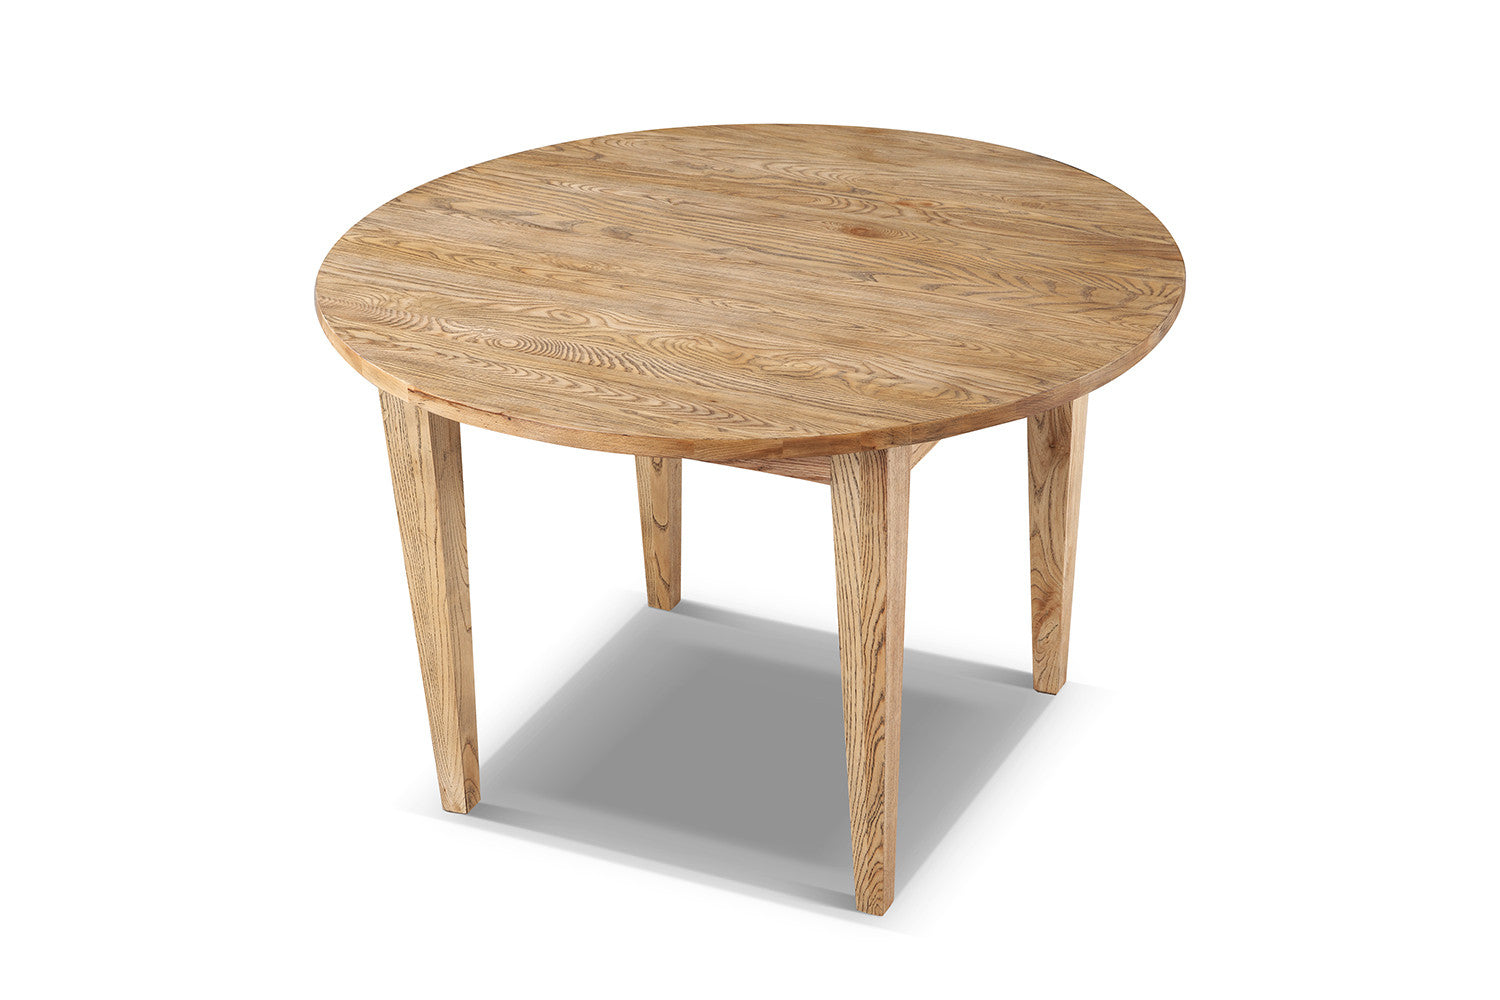 Table de cuisine ronde en bois rose moore for Dimension table de cuisine